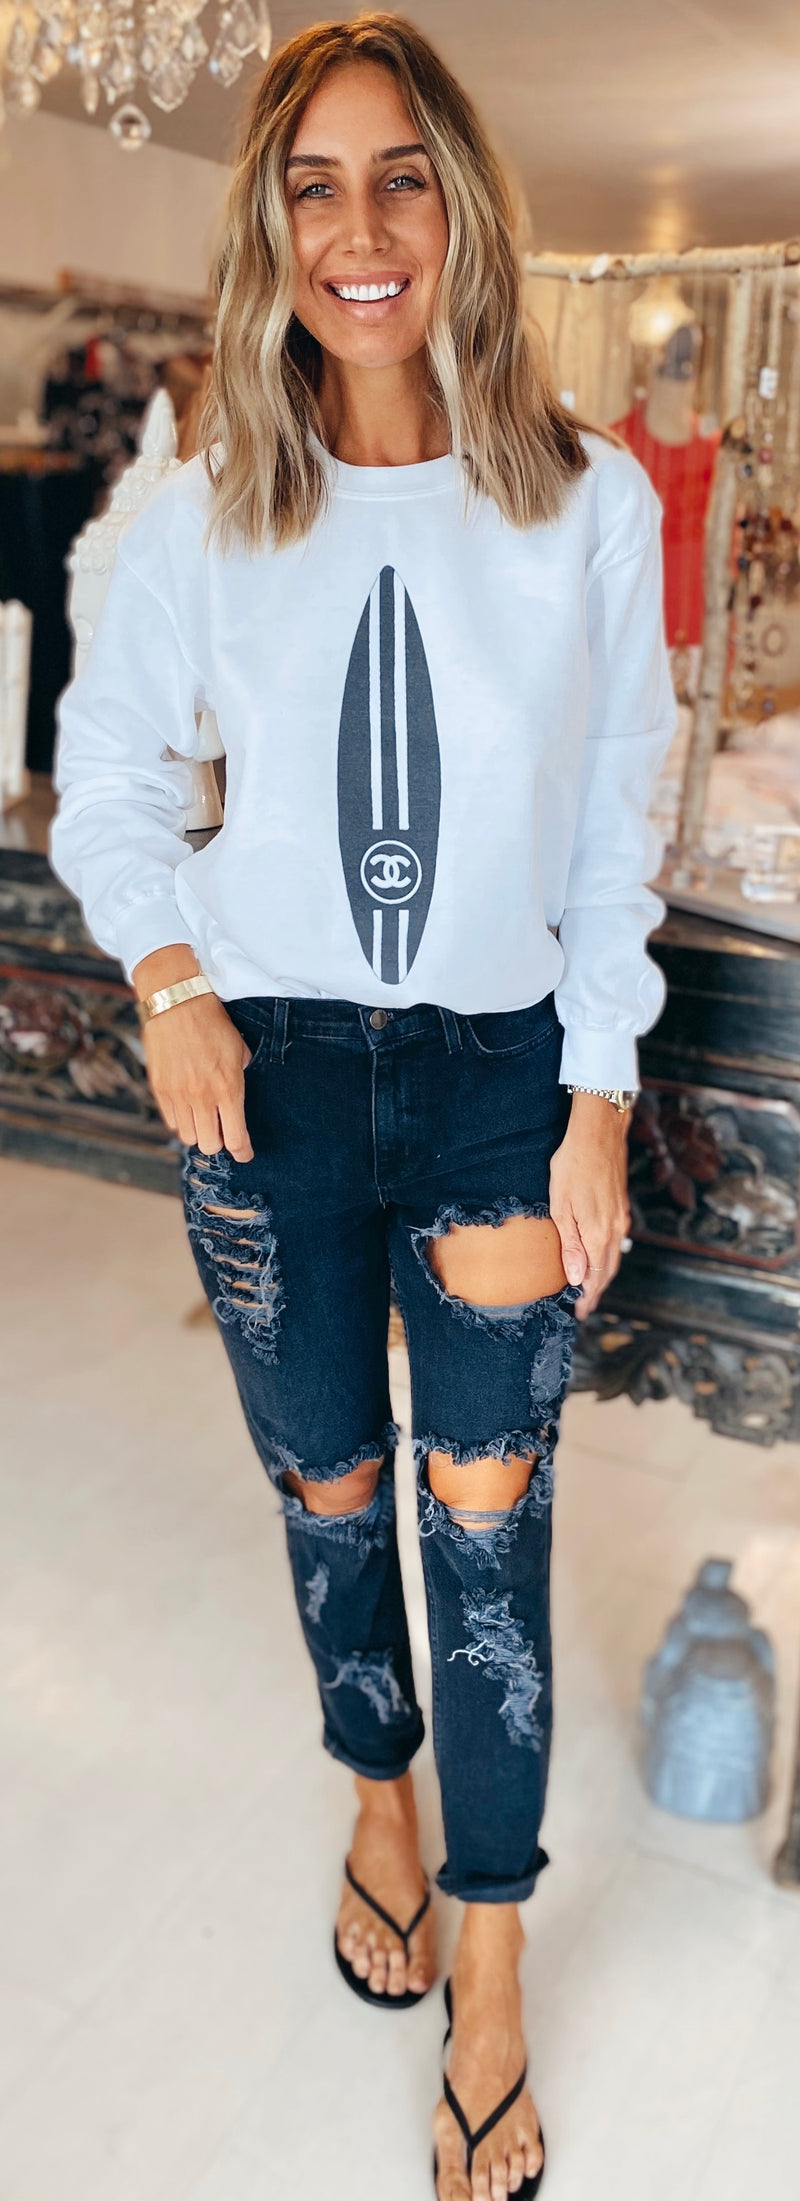 The Chanel Surfboard Sweatshirt